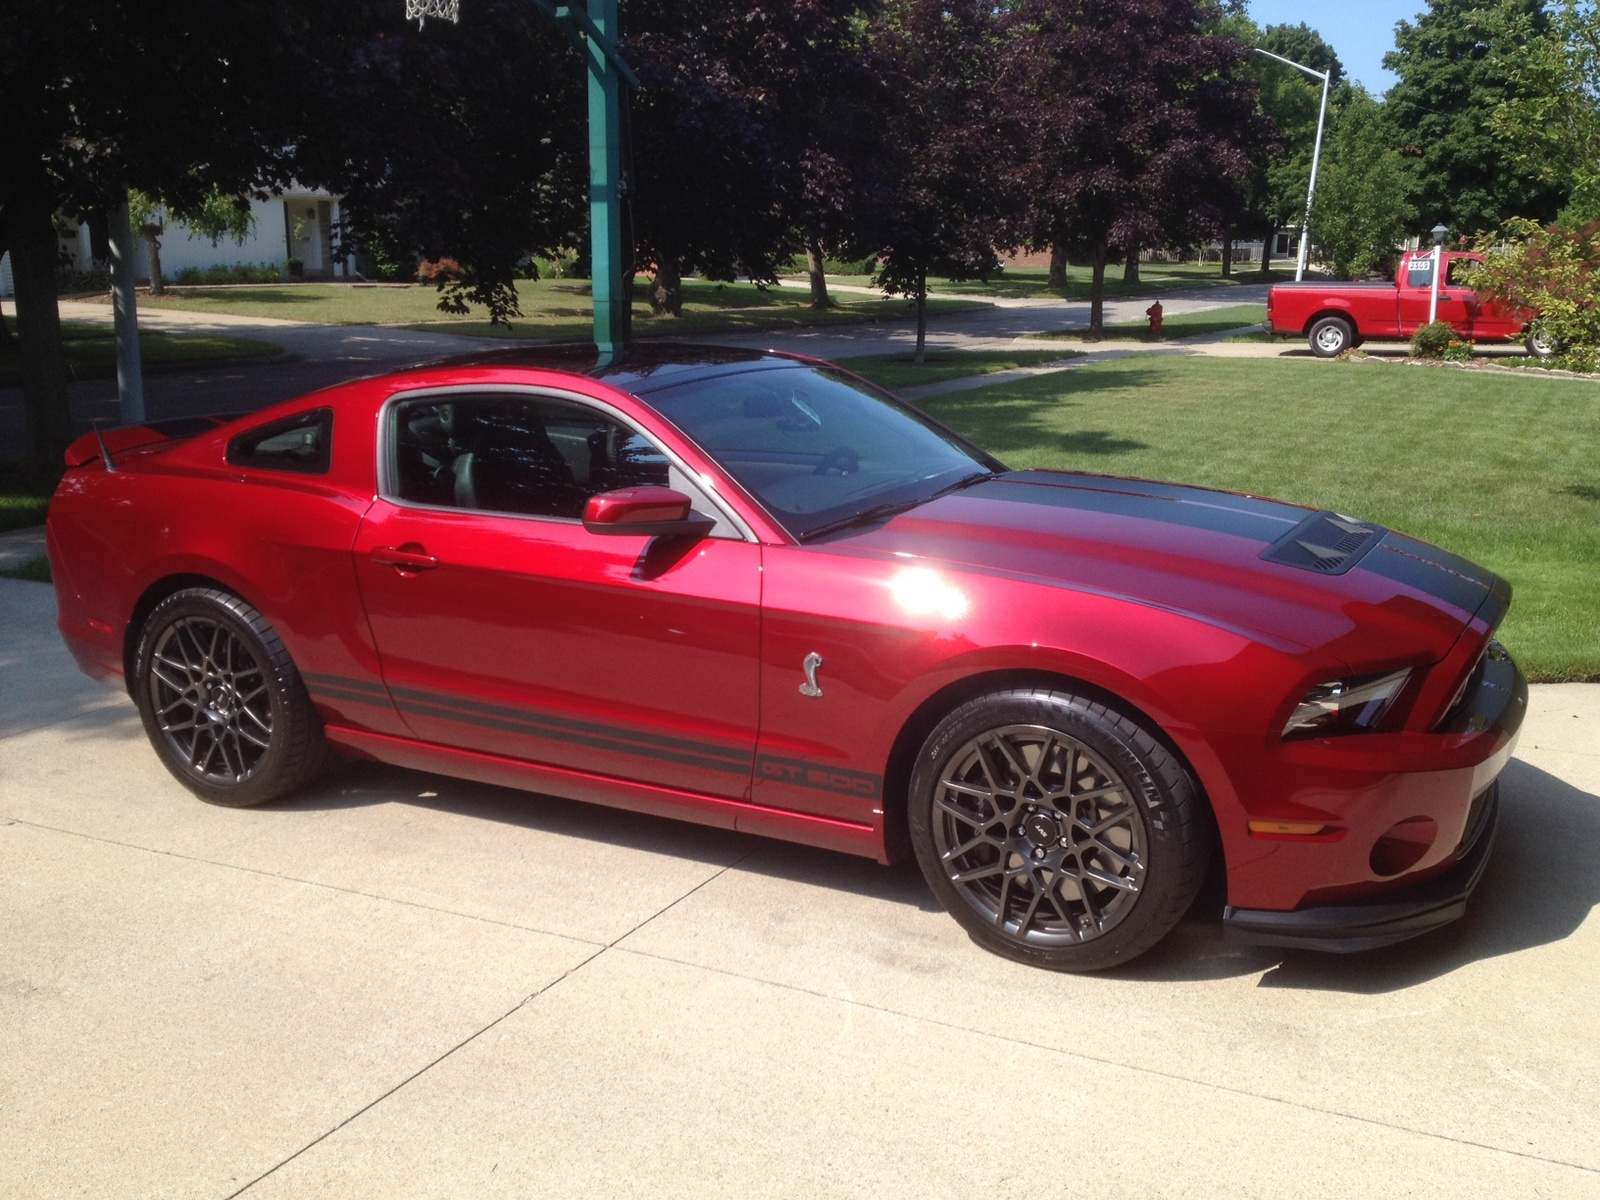 2014 Ford Shelby GT500 - Review - CarGurus